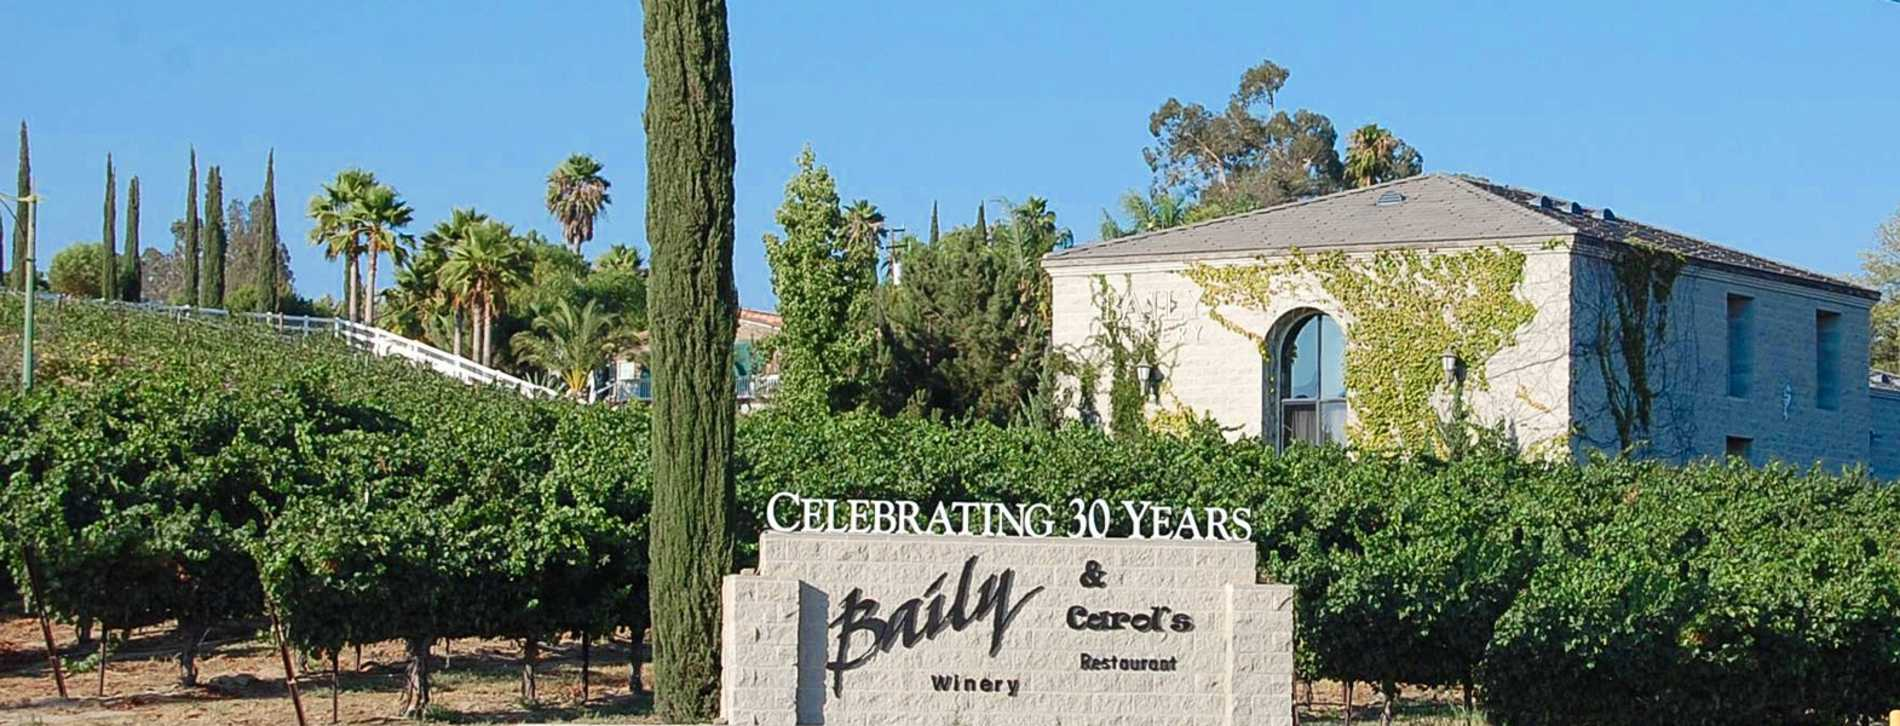 Baily Winery in Temecula, CA